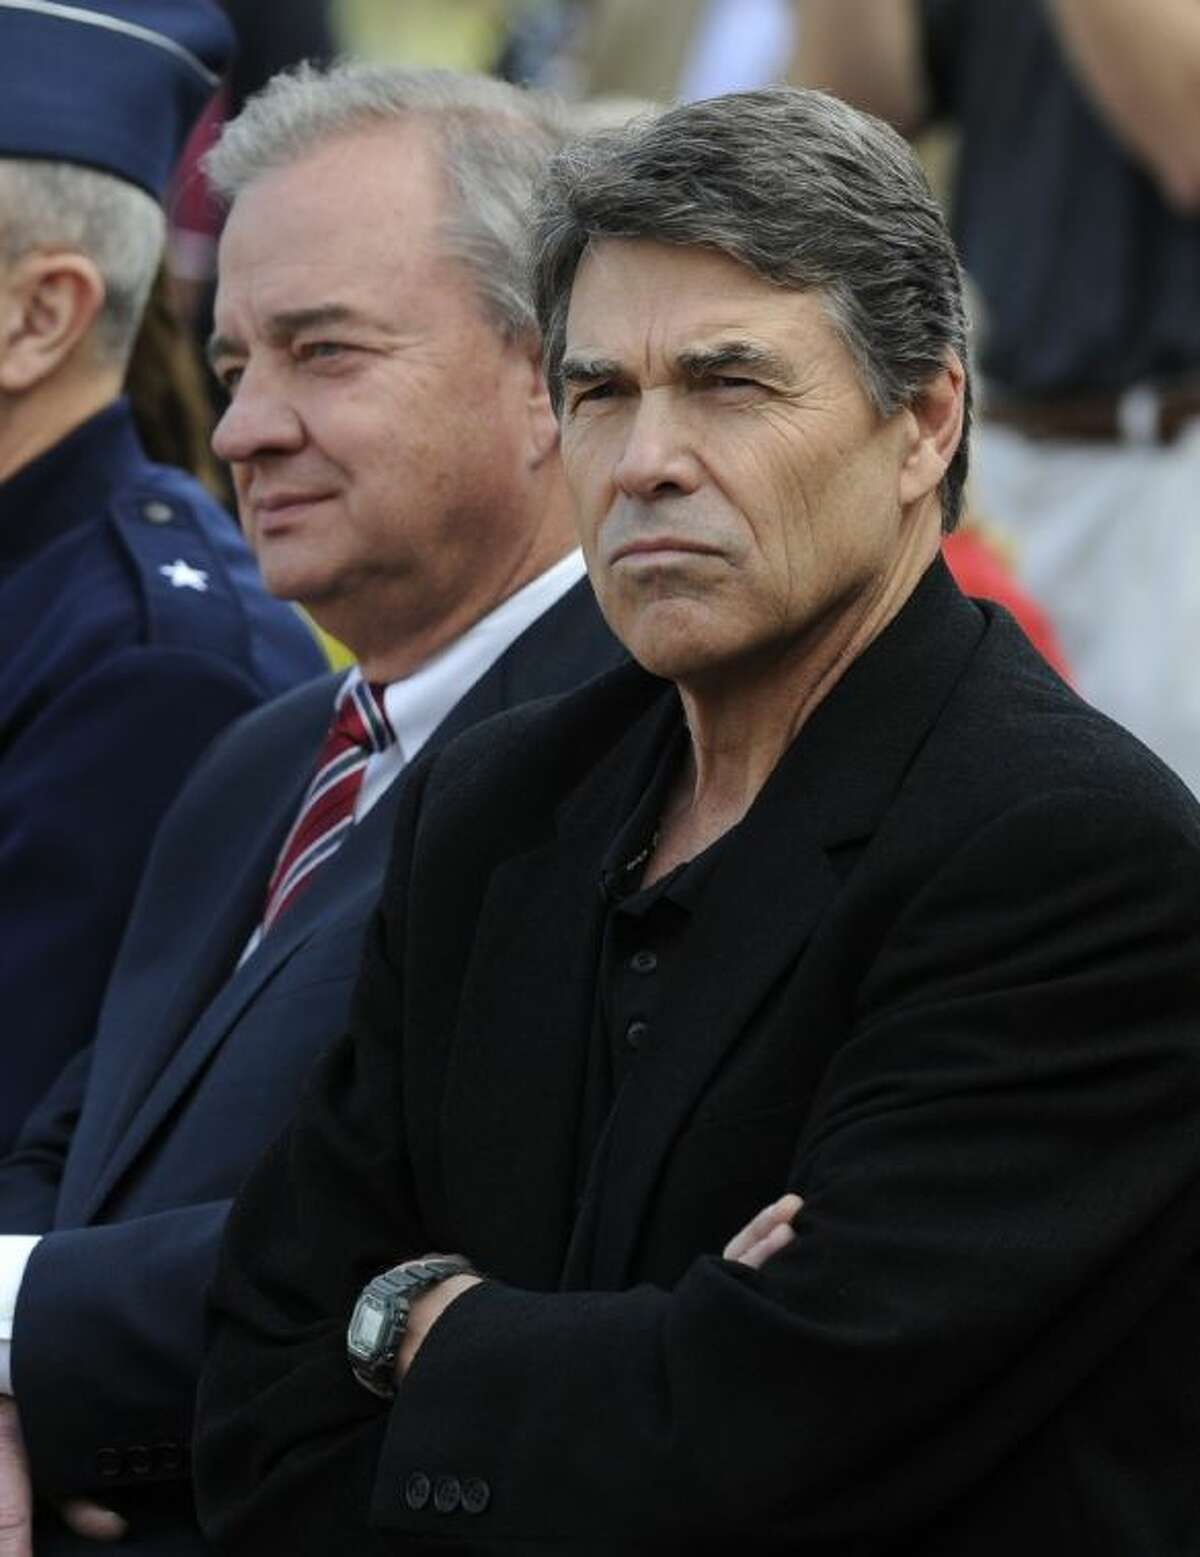 Texas Gov. Rick Perry and Texas A&M chancellor John Sharp attend ceremonies marking the reactivation of their old Corps of Cadets squadron last week in College Station. Perry spoke out against President Obama's plan to curb gun violence Wednesday.